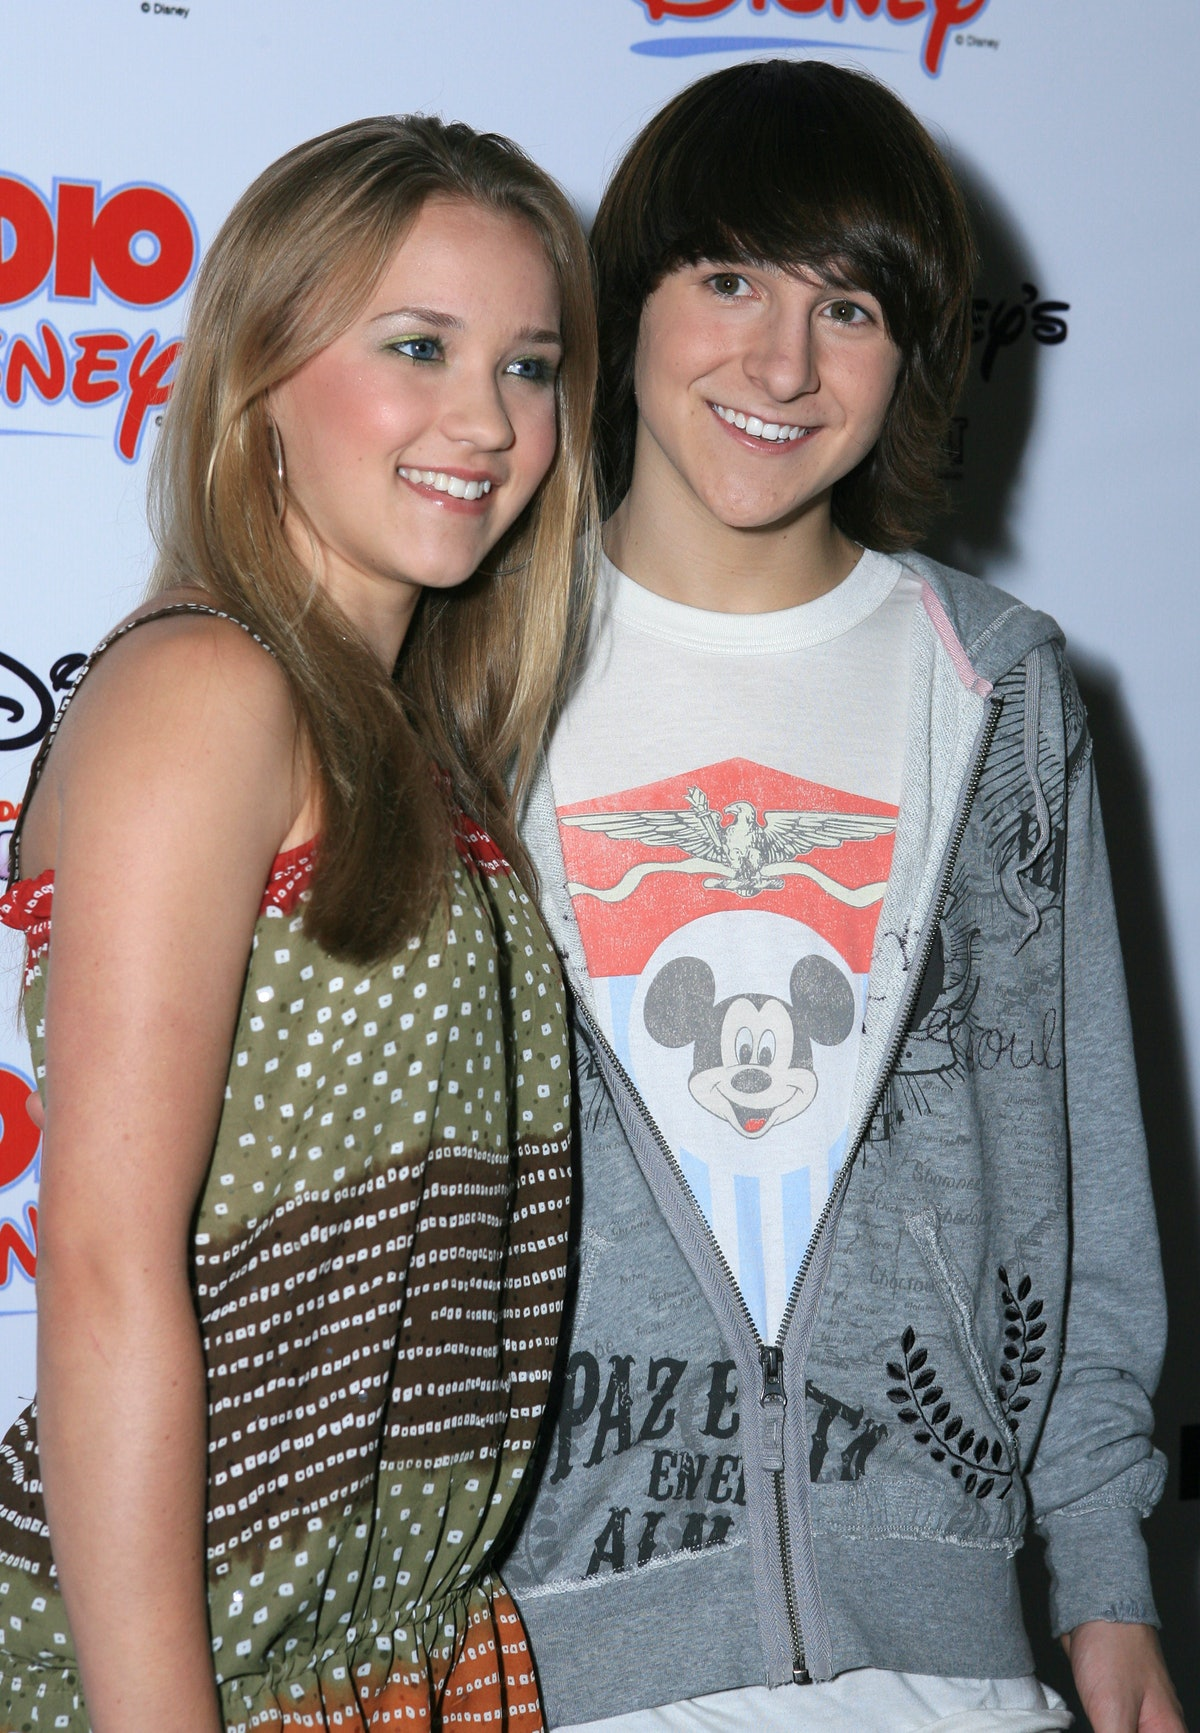 Are Emily Osment & Mitchel Musso Still Friends?